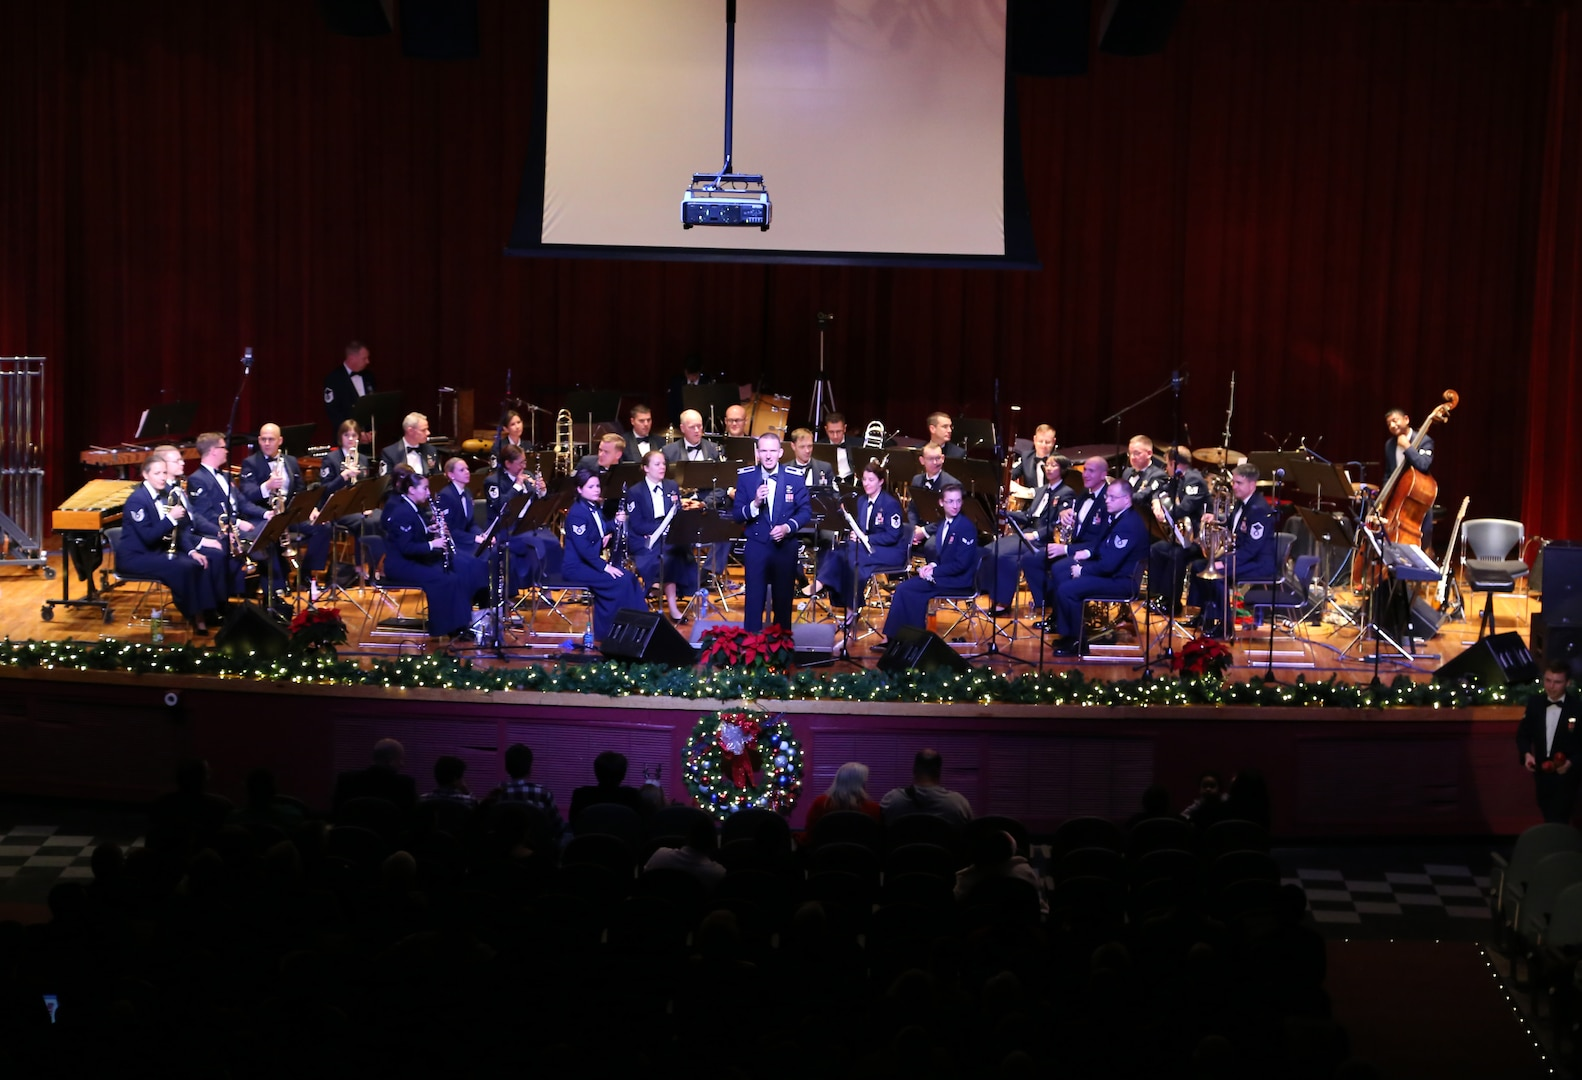 Air Force Capt. Joseph Hansen, Air Force Band of the West deputy commander and conductor, explains the story behind the pieces performed Dec. 17 at the Joint Base San Antonio-Lackland Bob Hope Theater. (U.S. Air Force photo by Airman 1st Class Lincoln Korver)